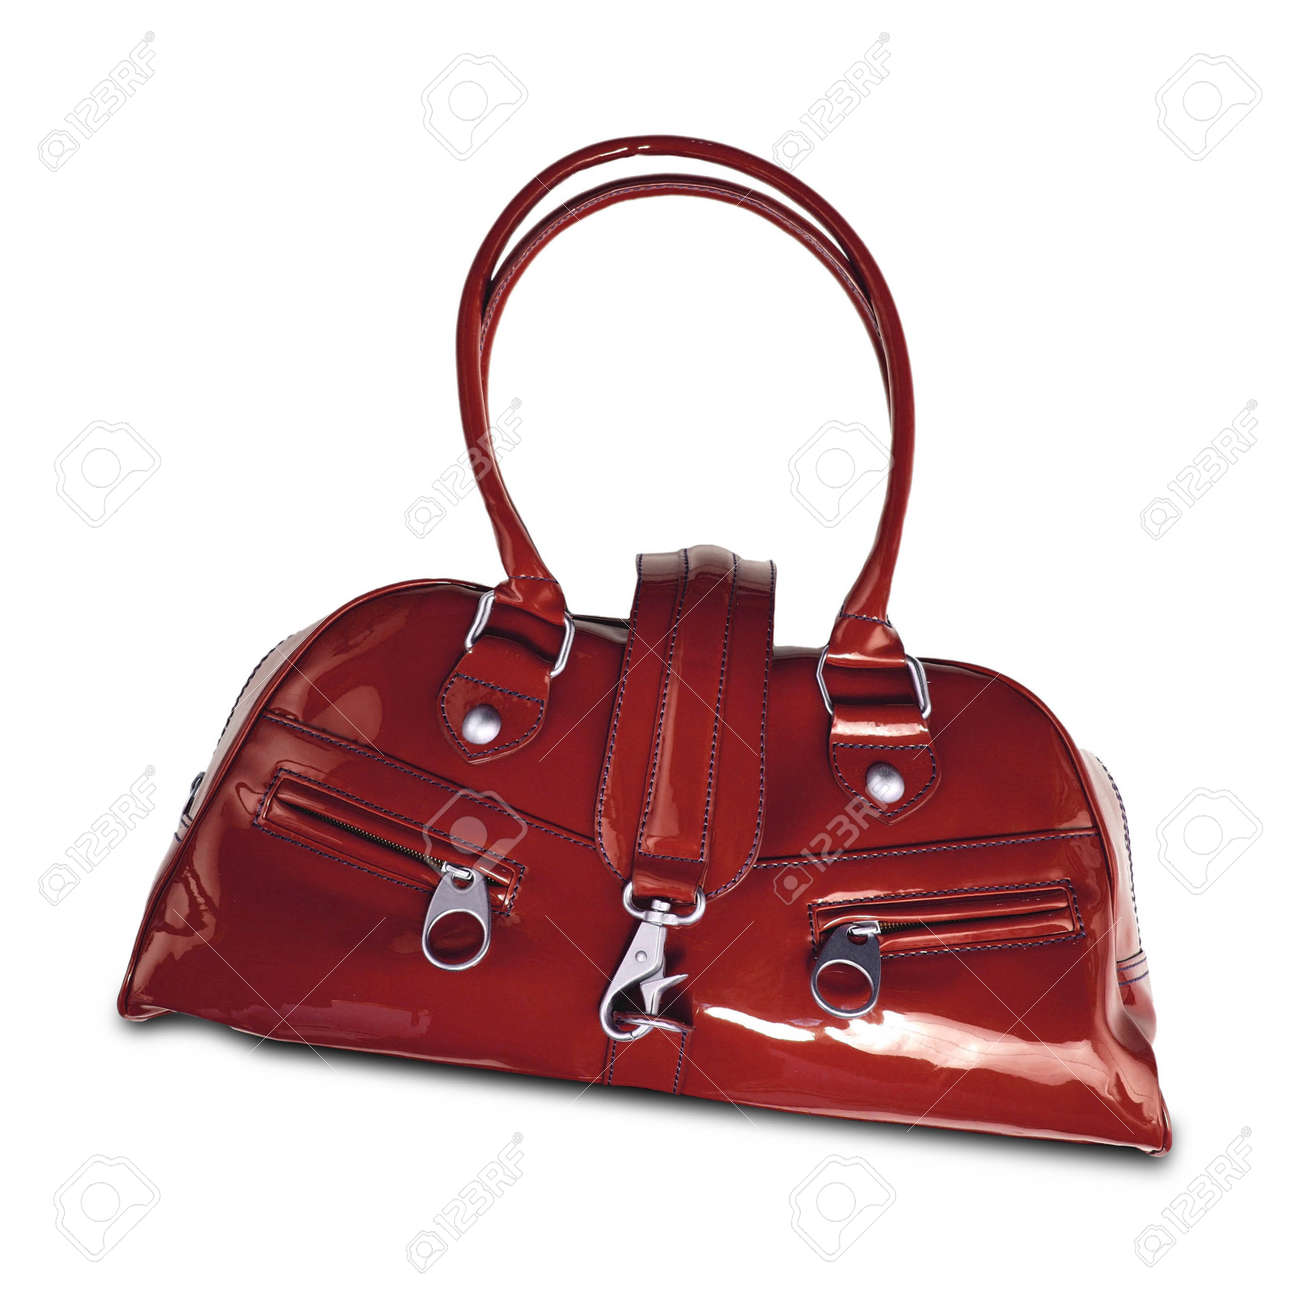 0d1092e7f76ad Red women bag isolated on white background Stock Photo - 60509492